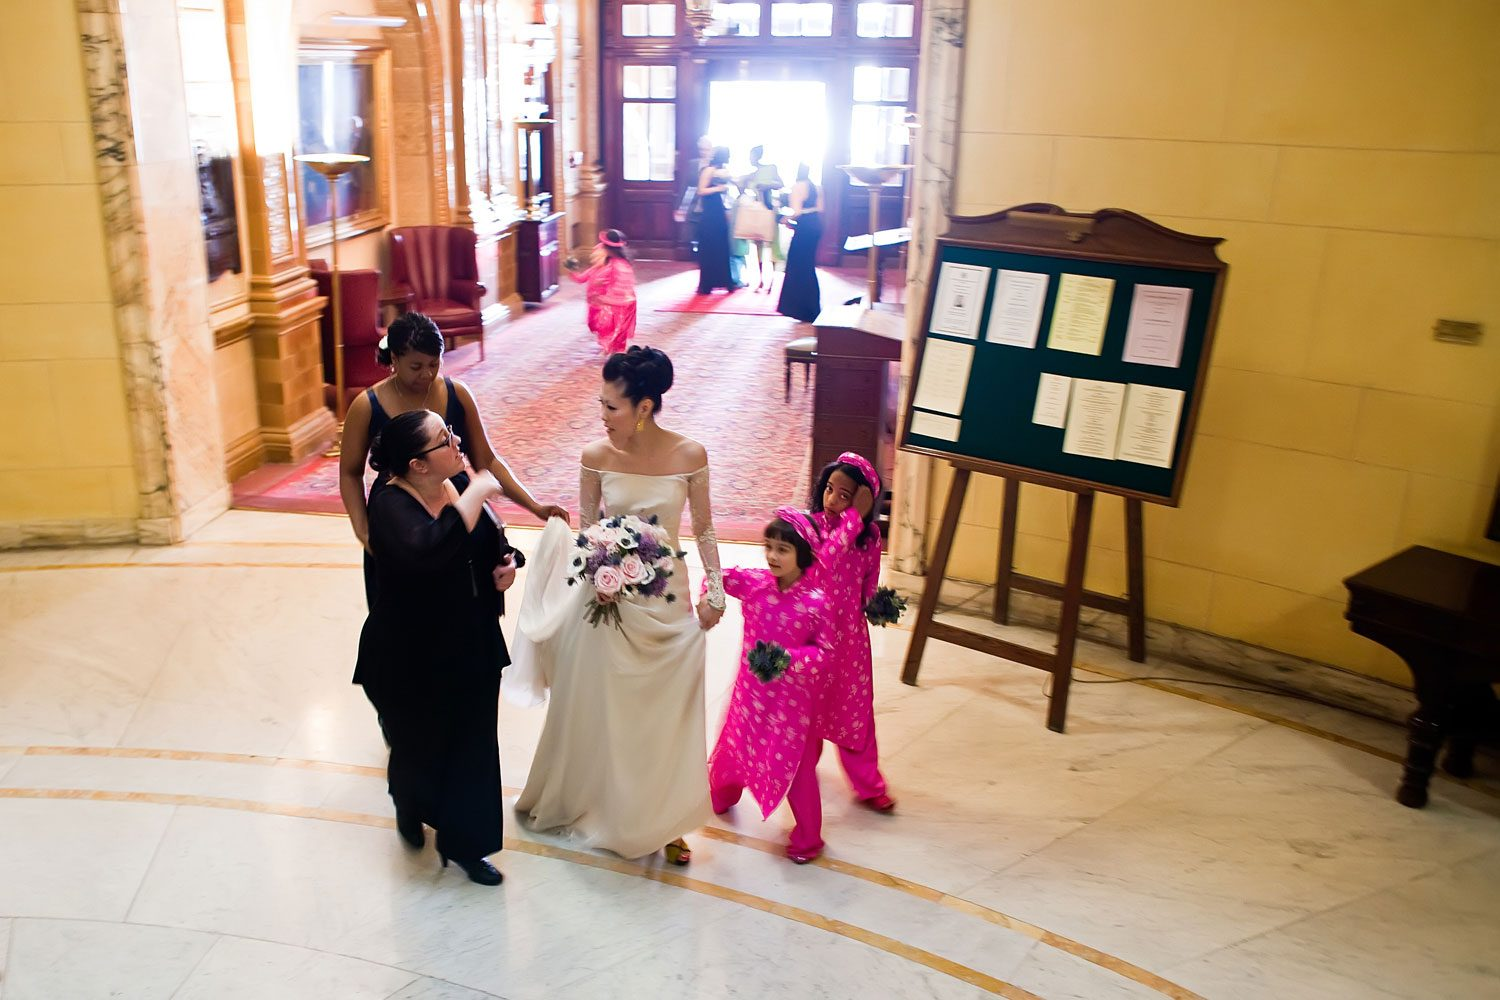 bride and bridesmaids arrive at ceremony